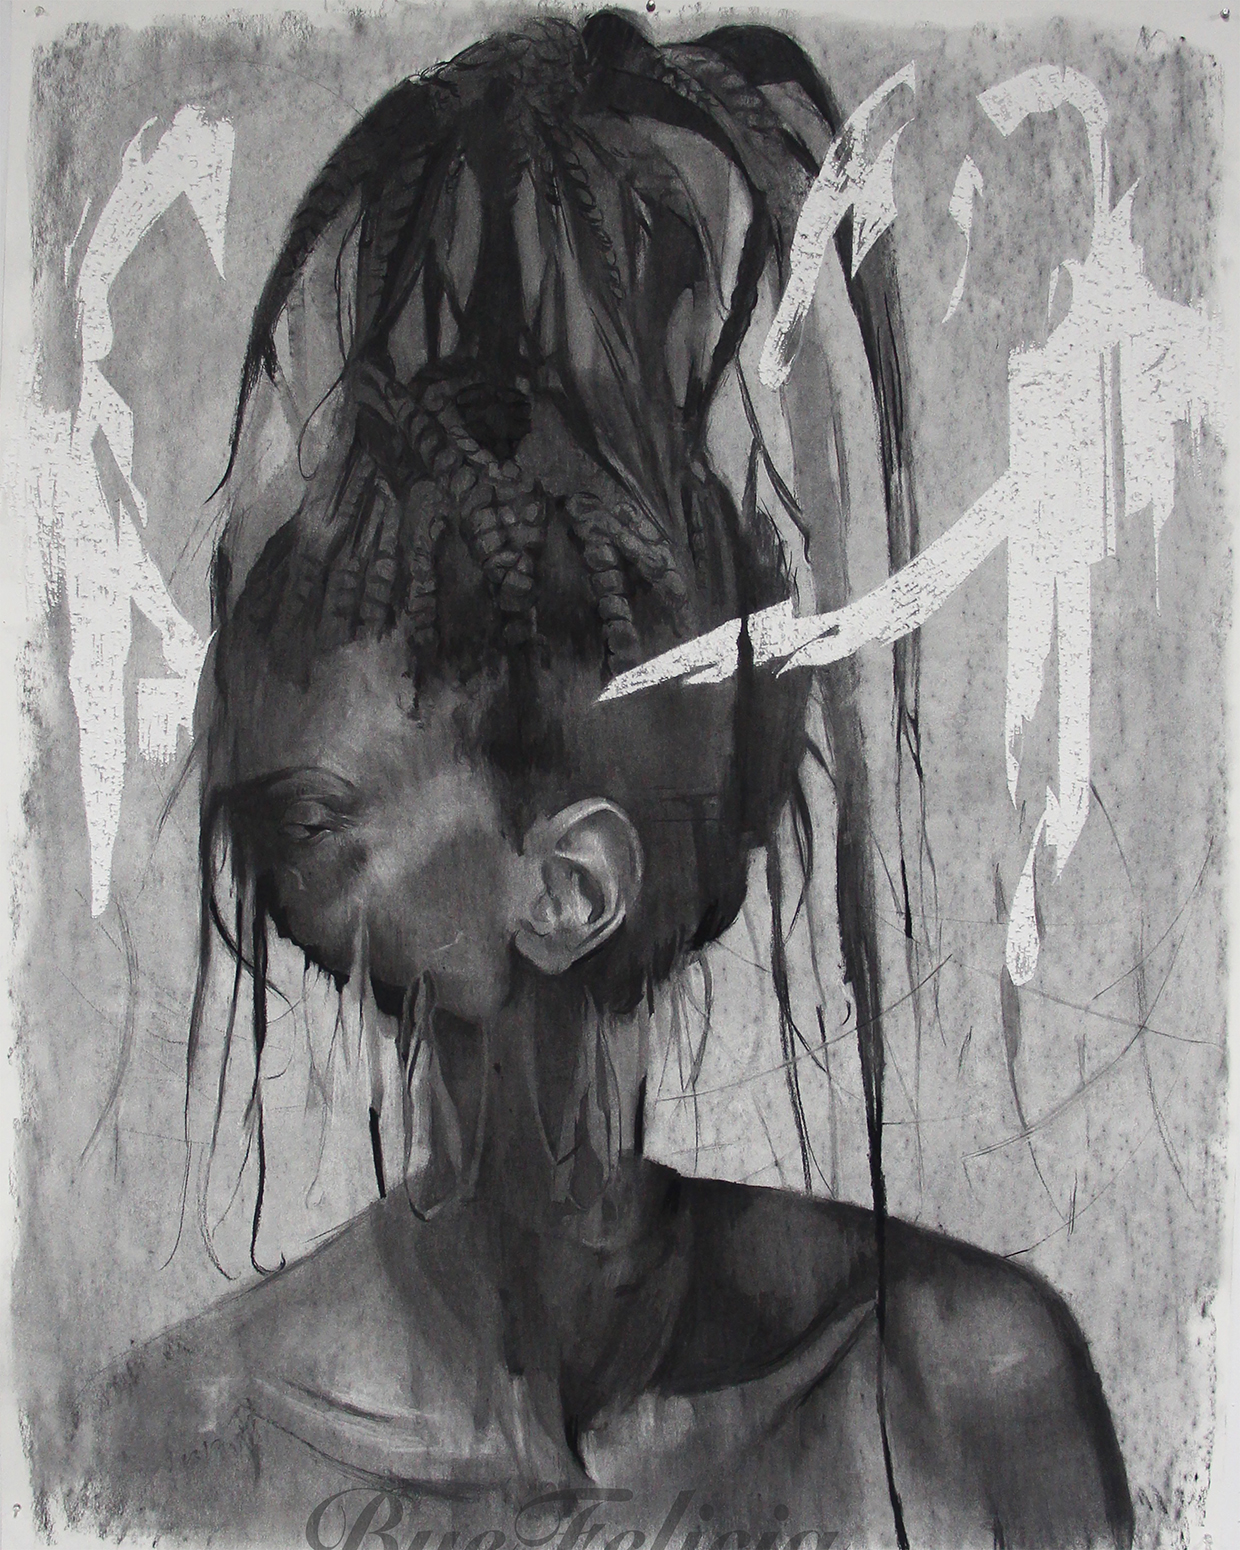 Cosmo Whyte, Cut Eye, 2016, charcoal on paper, 52 x 74 inches